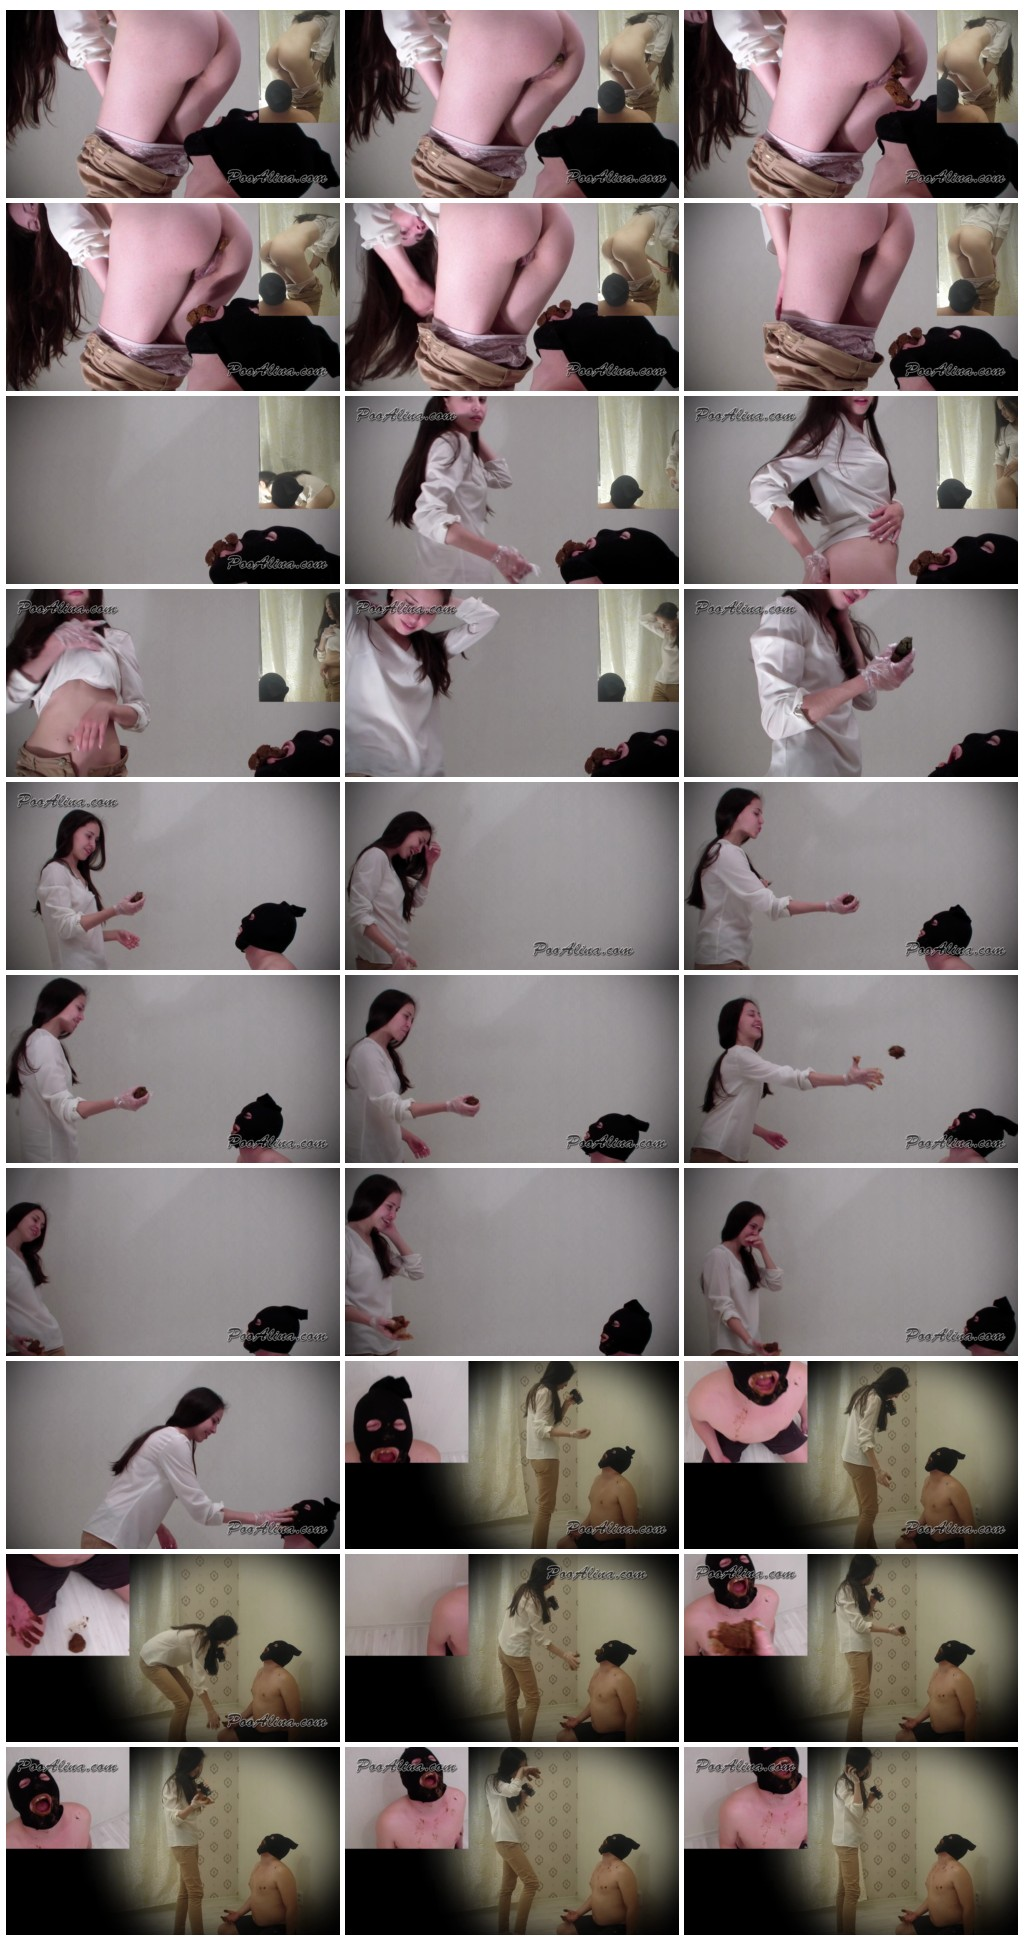 Alina pooping in mouth of a toilet slave Scat shit defecation Femdom Toilet SlaveryFace shit Domination Eat shit  thumb - Alina pooping in mouth of a toilet slave [Scat,  shit,  Femdom ,Toilet Slavery, Domination, Eat shit ]